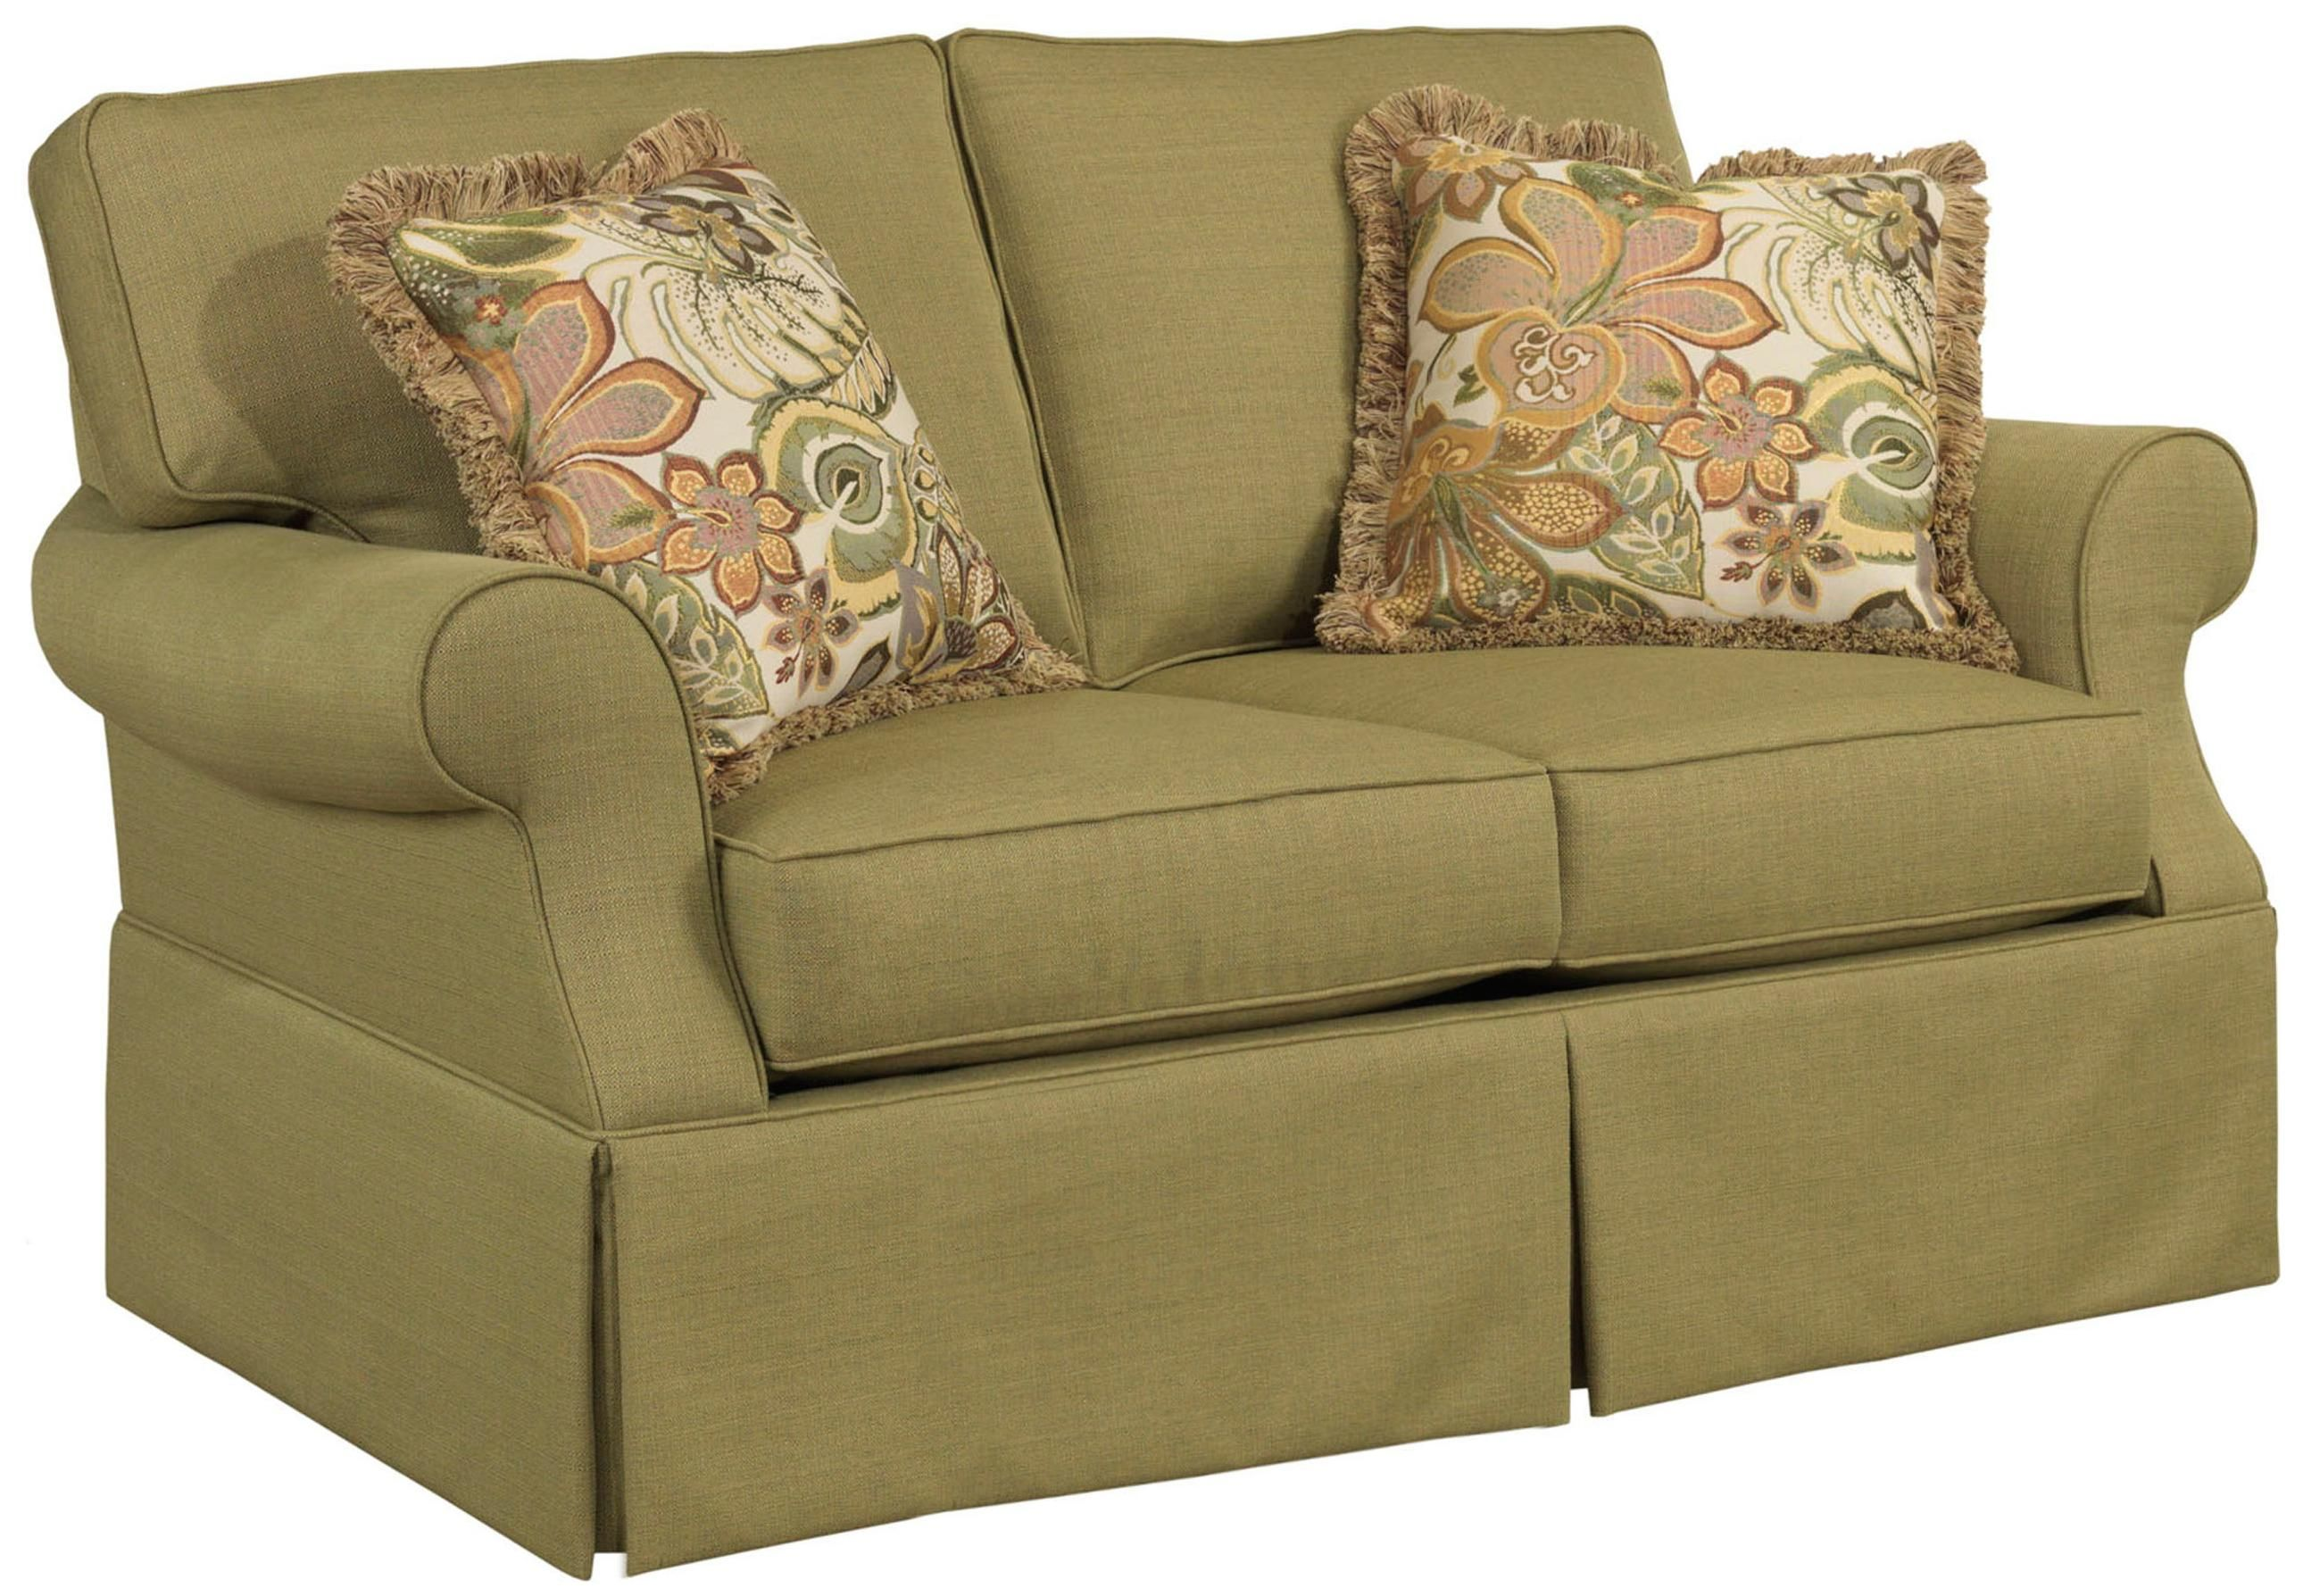 Awesome Emma Loveseat By Broyhill Furniture Furniture Ncnpc Chair Design For Home Ncnpcorg